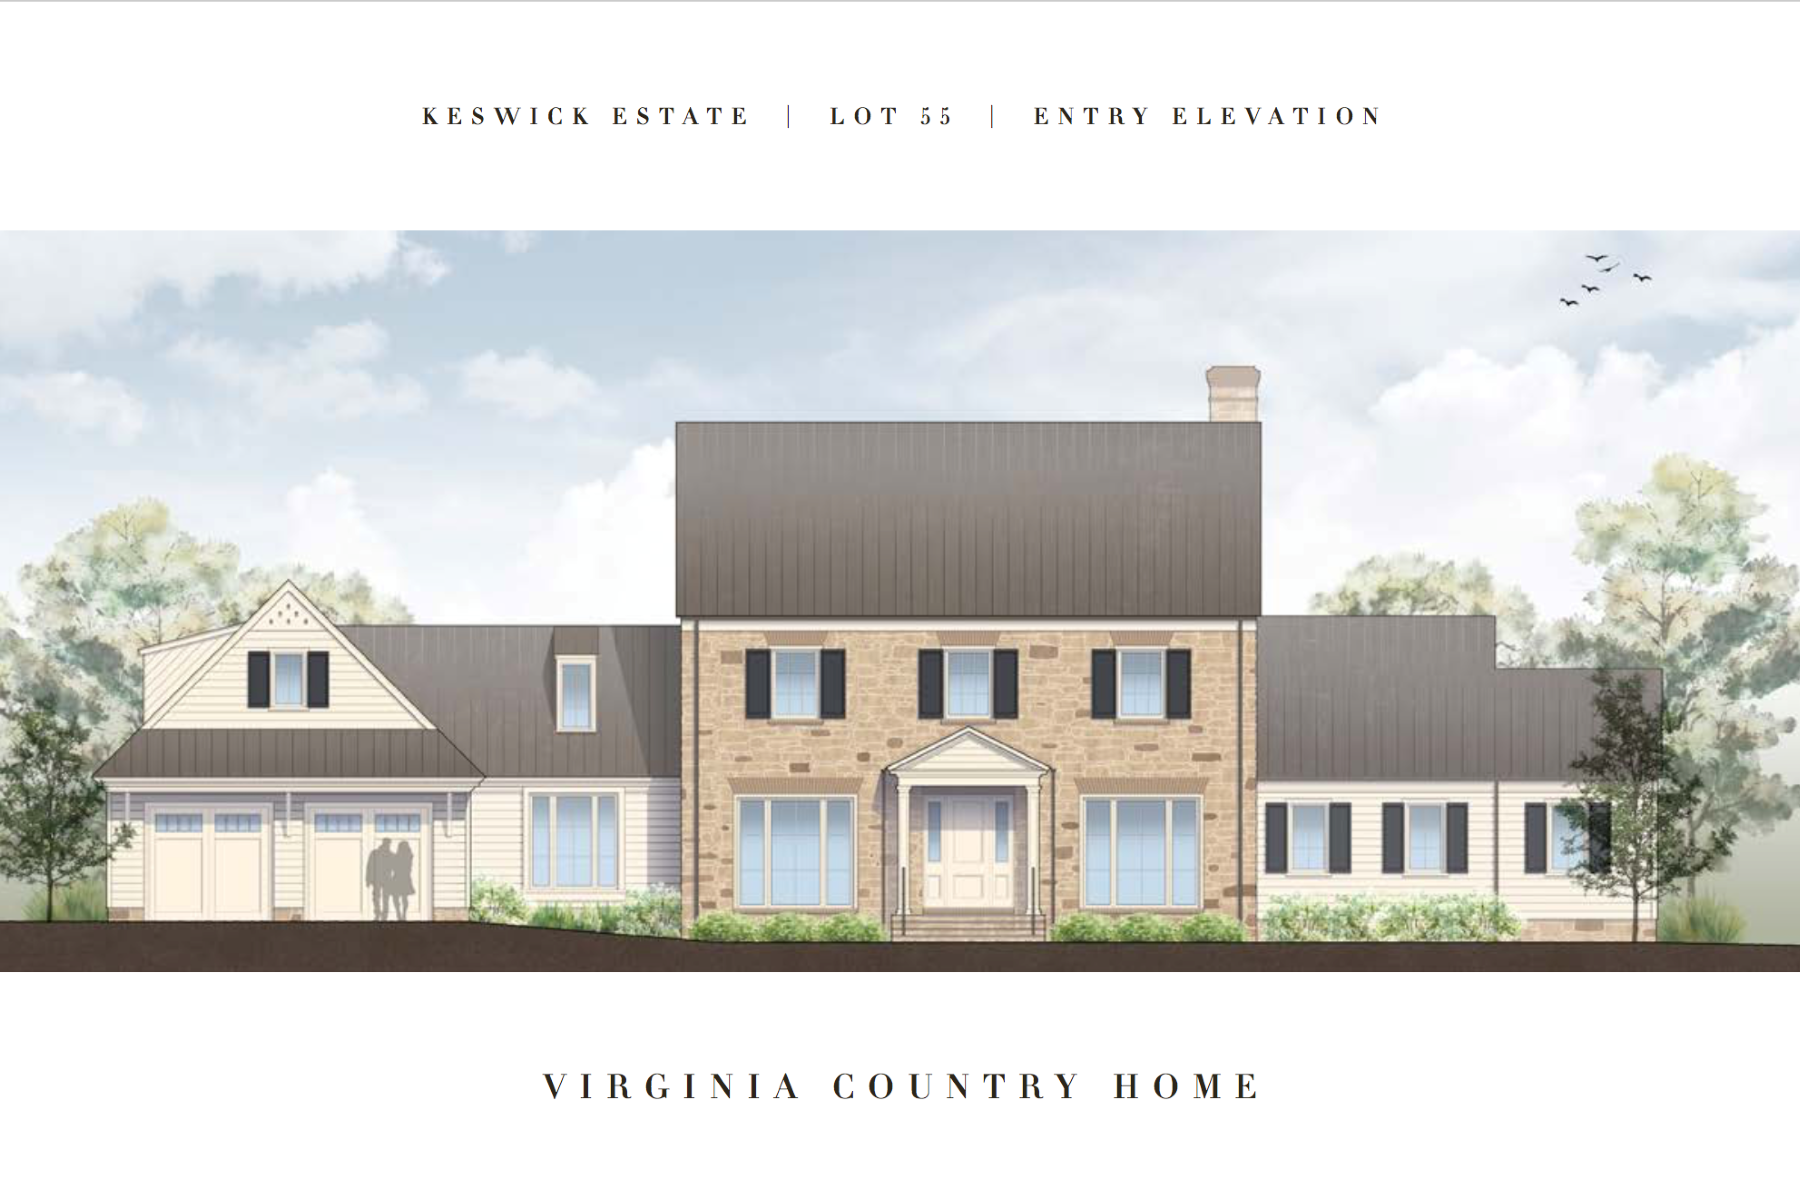 Single Family Homes for Sale at Keswick Virginia Country Home 3280 Broadmoor Drive Keswick, Virginia 22947 United States